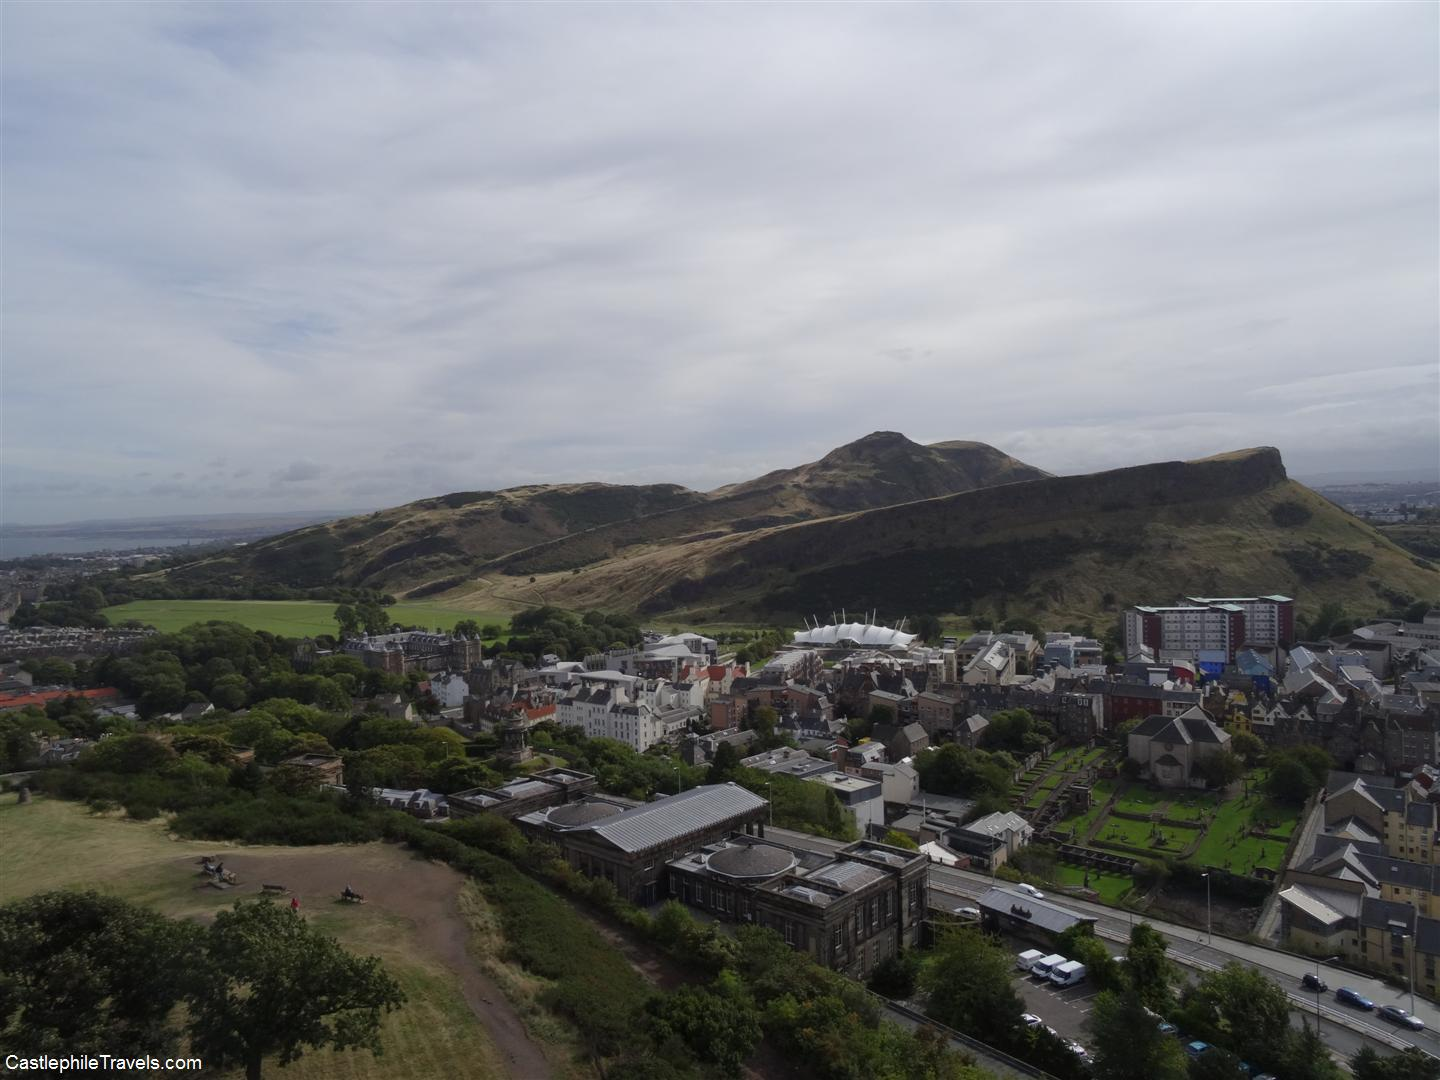 View from Nelson's Monument: Holyrood, Salisbury Crags and Arthur's Seat